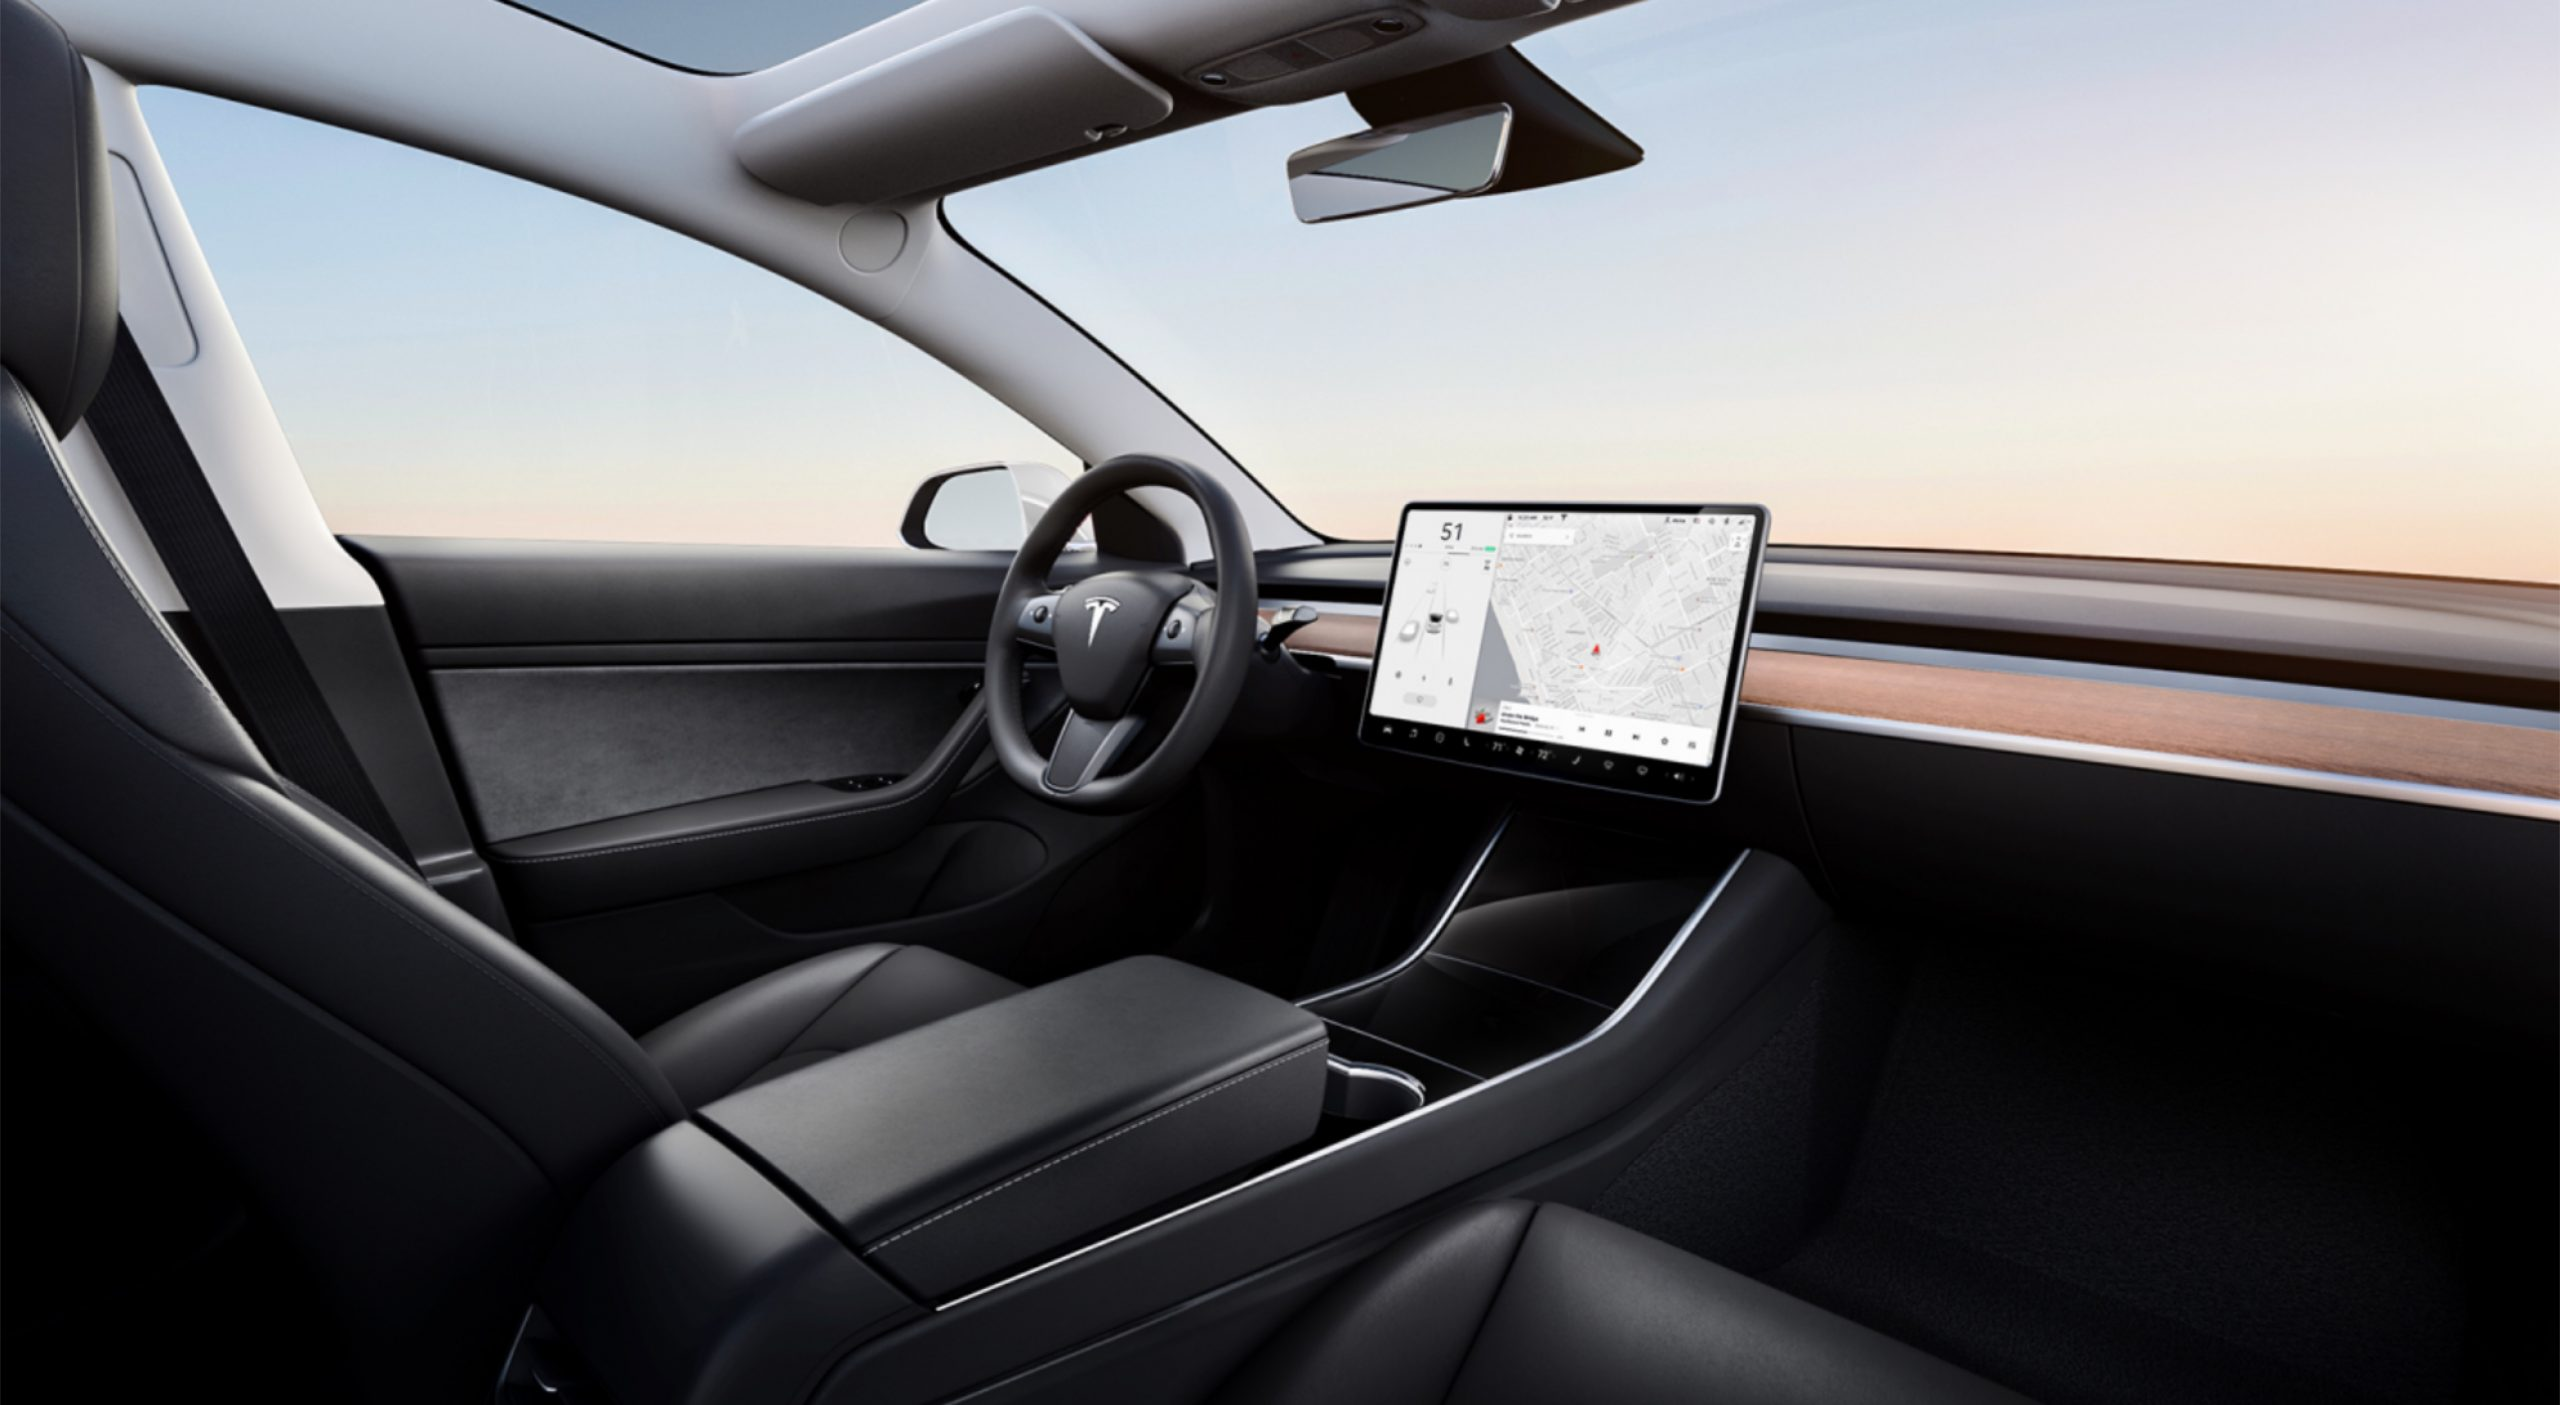 Model 3 interior design studio